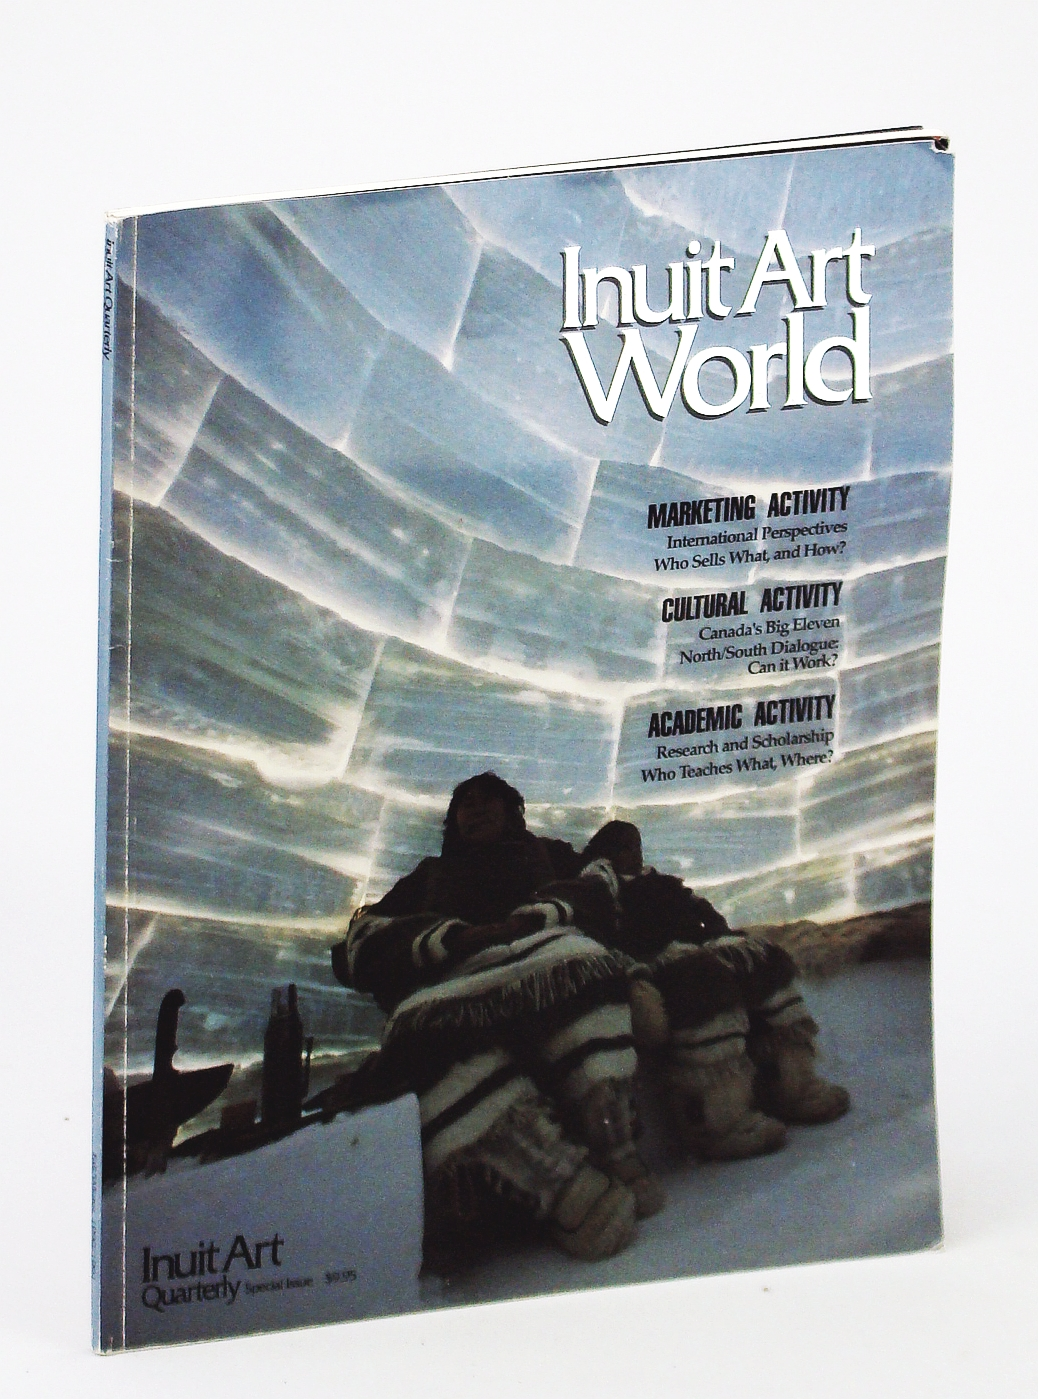 Image for Inuit Art World - Inuit Art Quarterly [IAQ] Special Issue, Fall/Winter 1990/1991, Vol. 5, No. 4